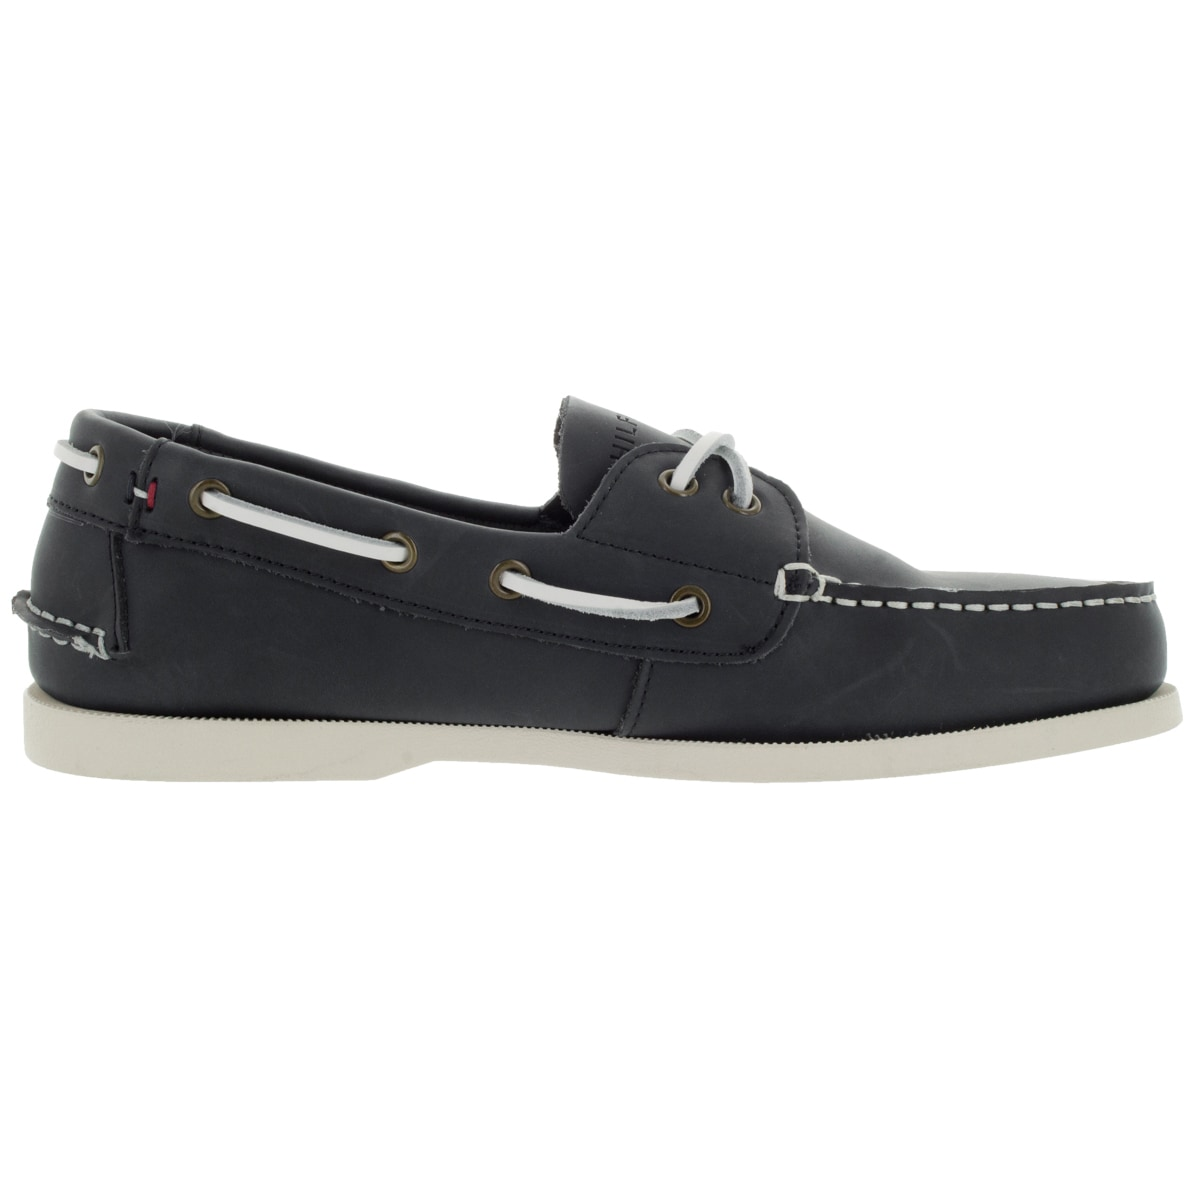 Shop Tommy Hilfiger Men s Bowman Dark Blue Leather Casual Shoe - Free  Shipping Today - Overstock - 12121305 9a0de3aa897